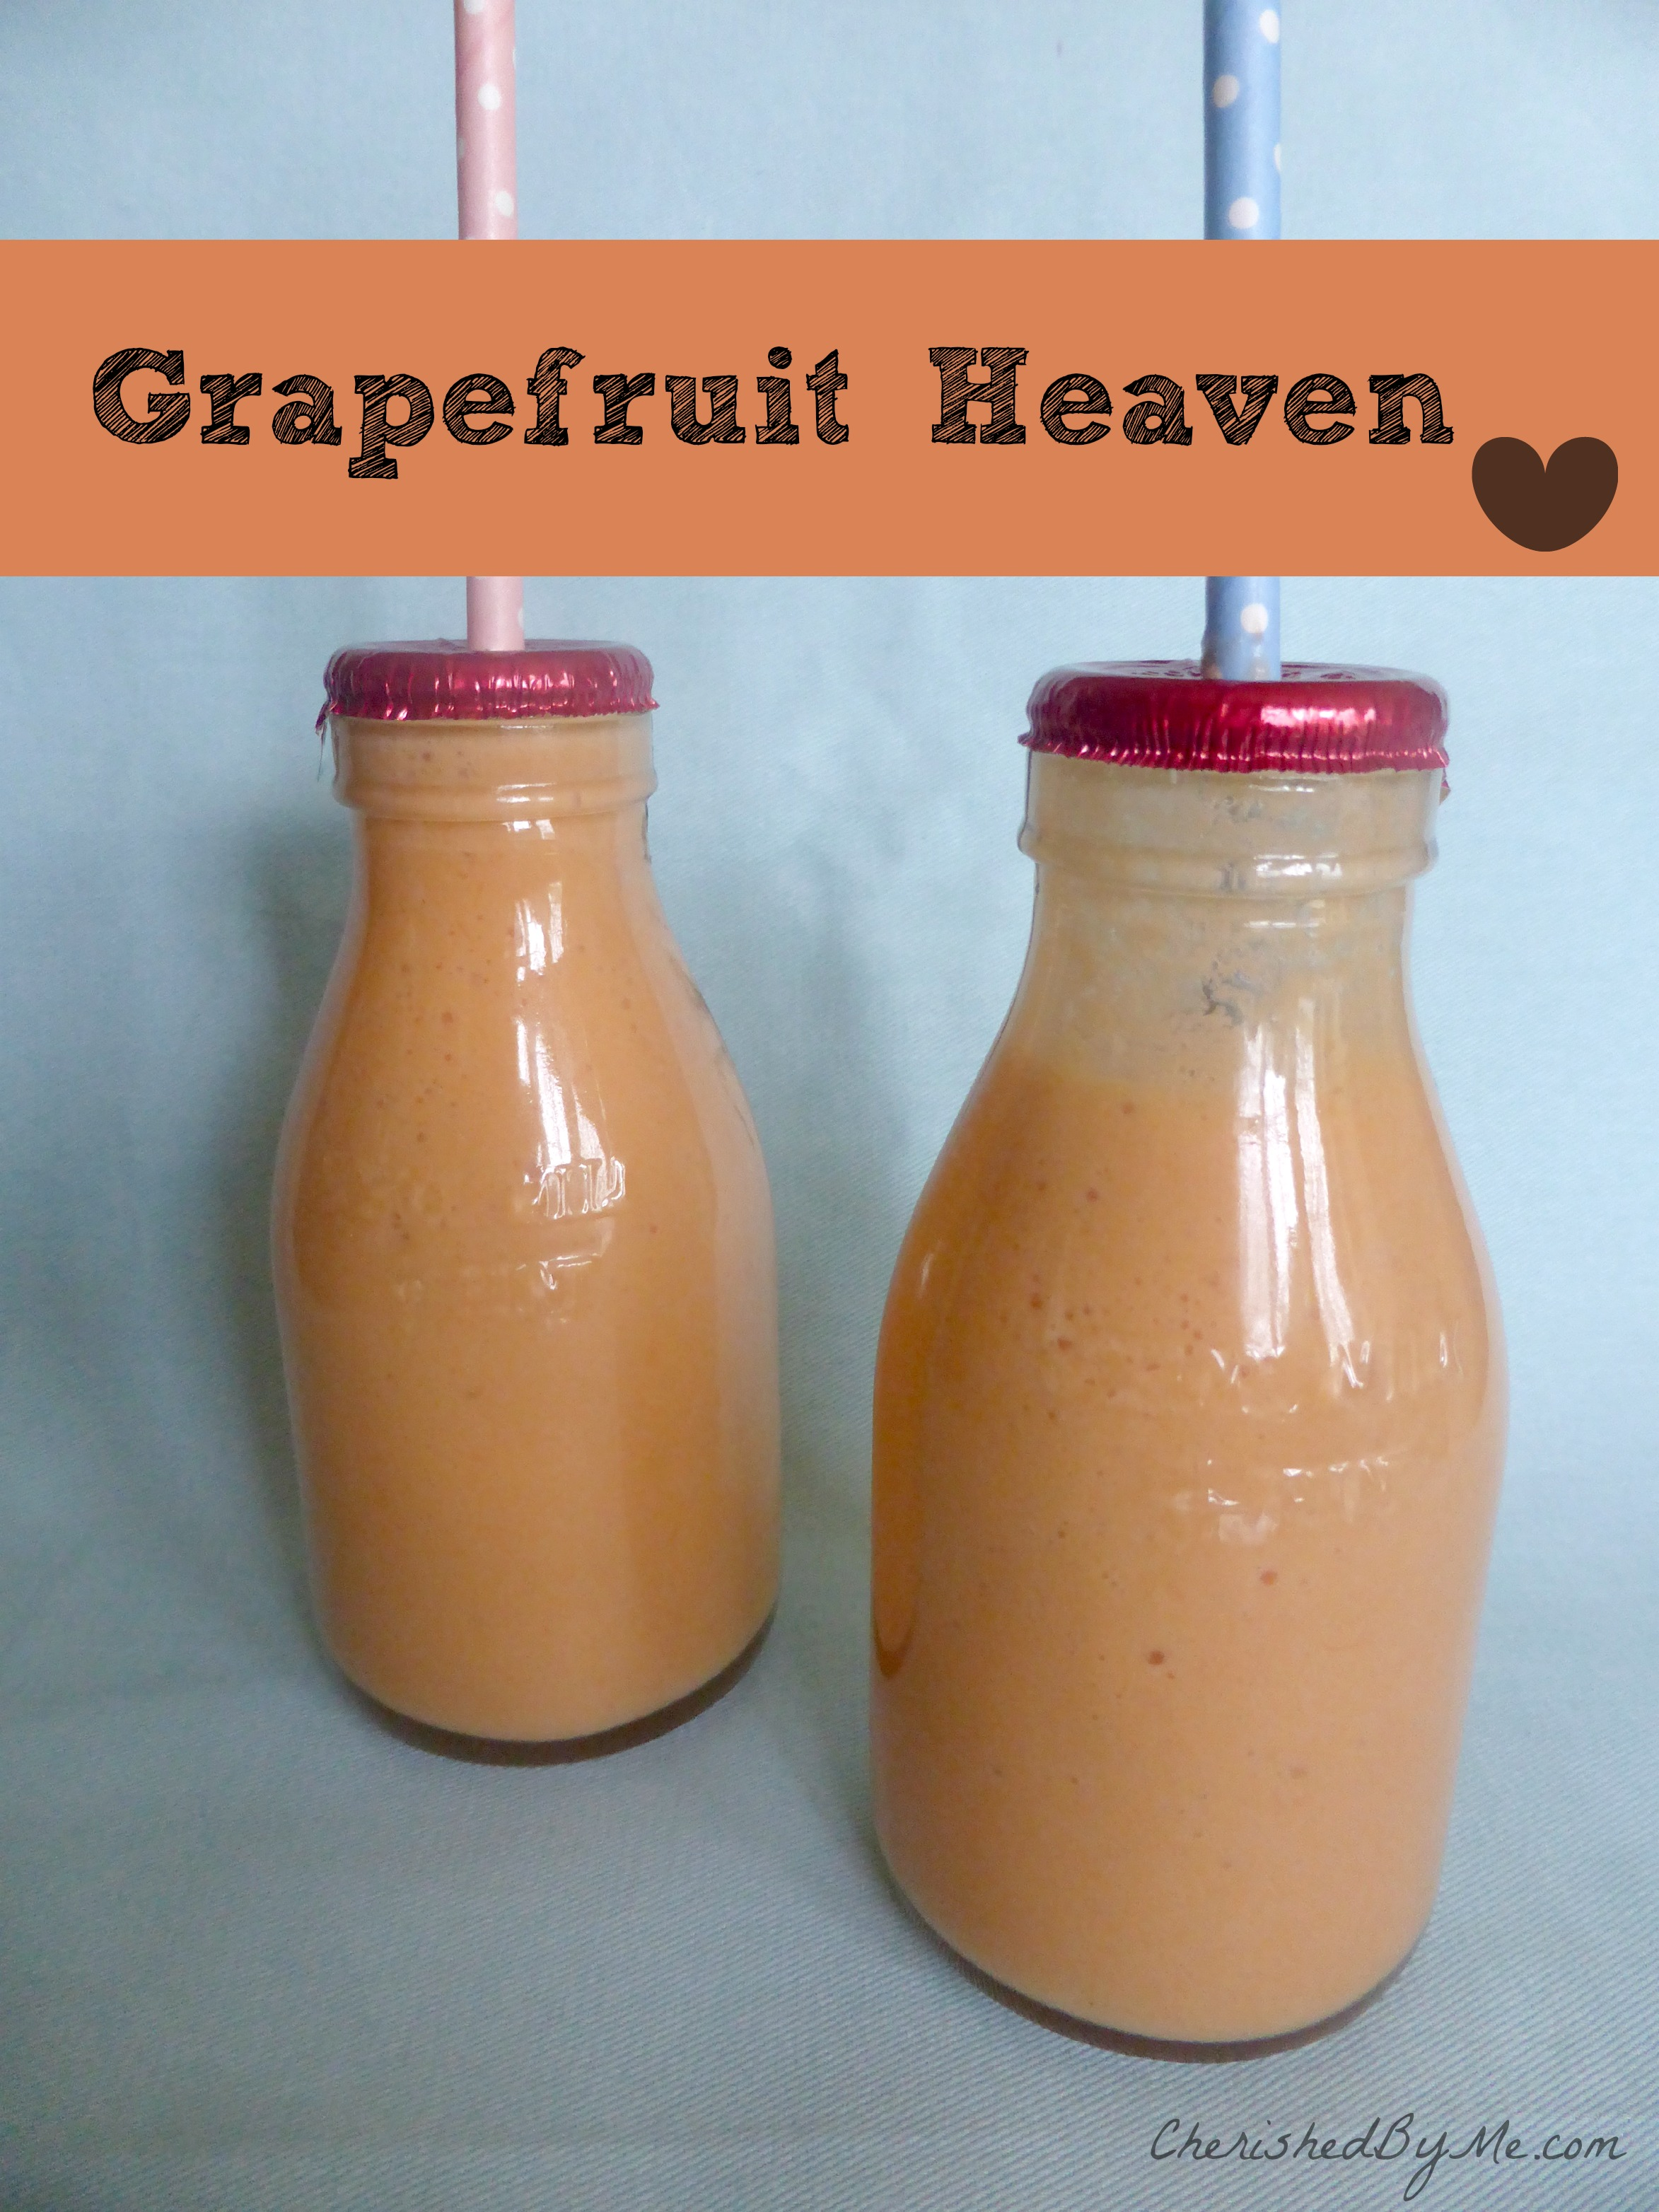 Grapefruit Heaven